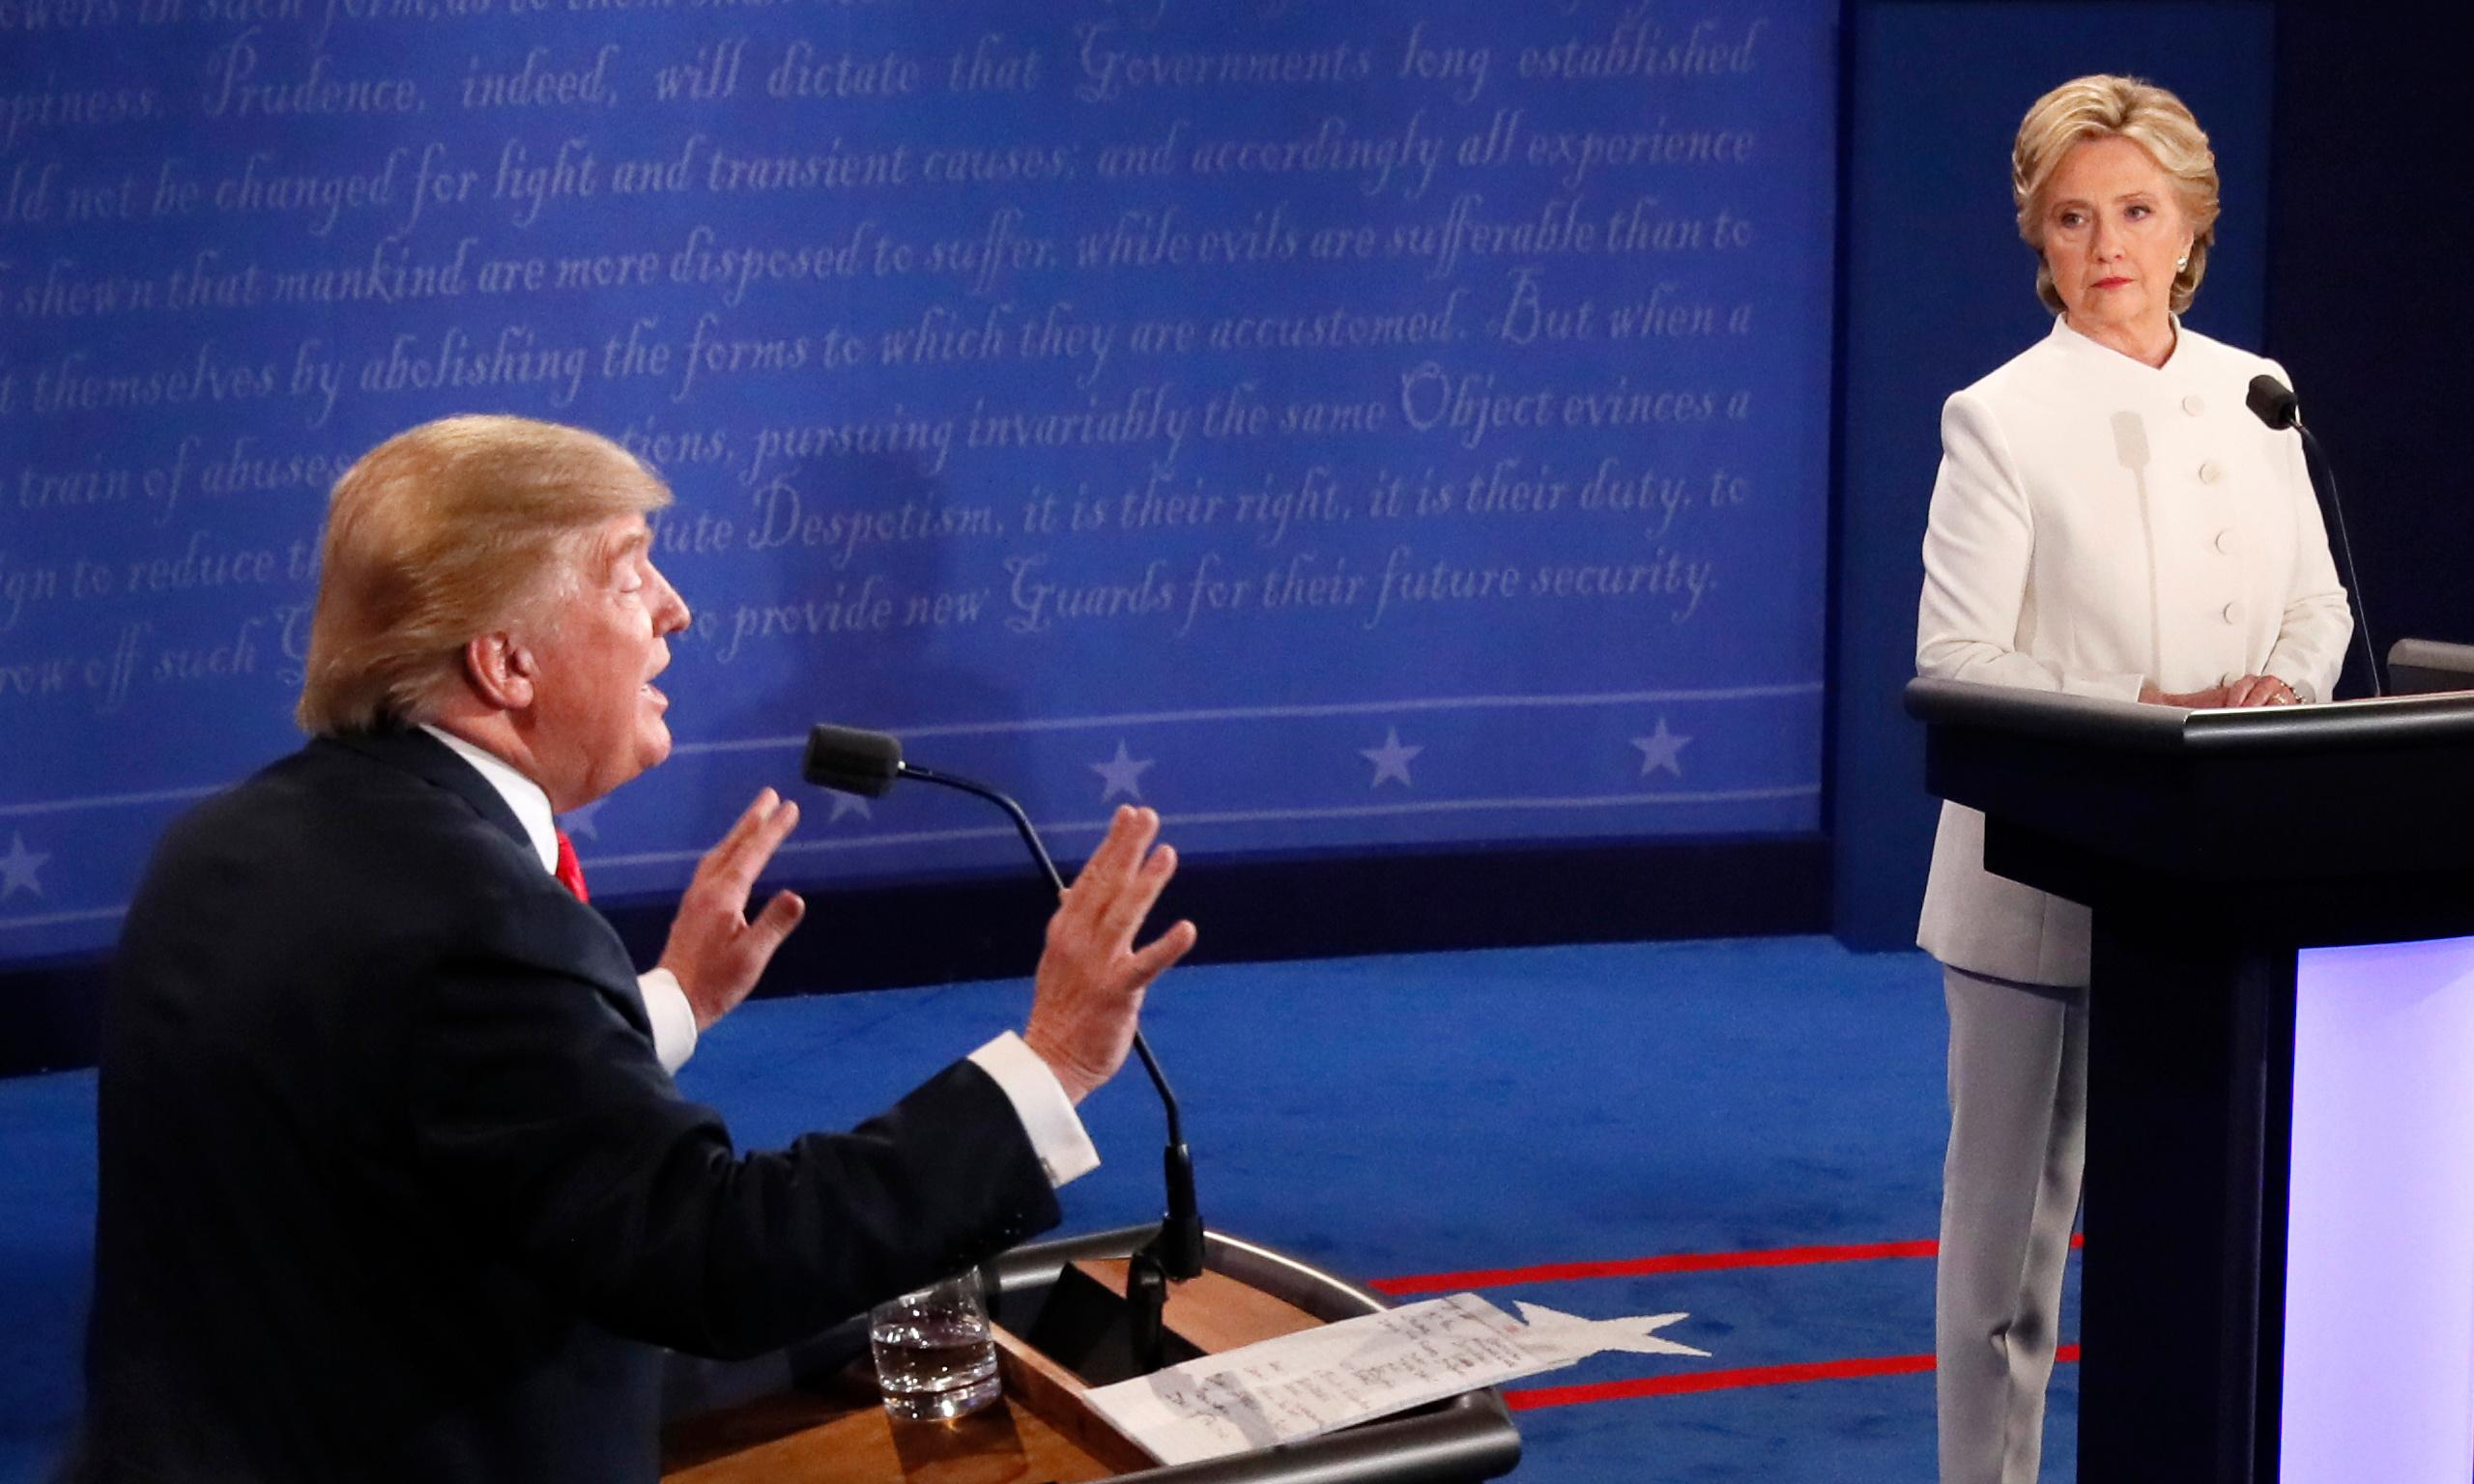 Who wins from public debate? Liars, bullies and trolls